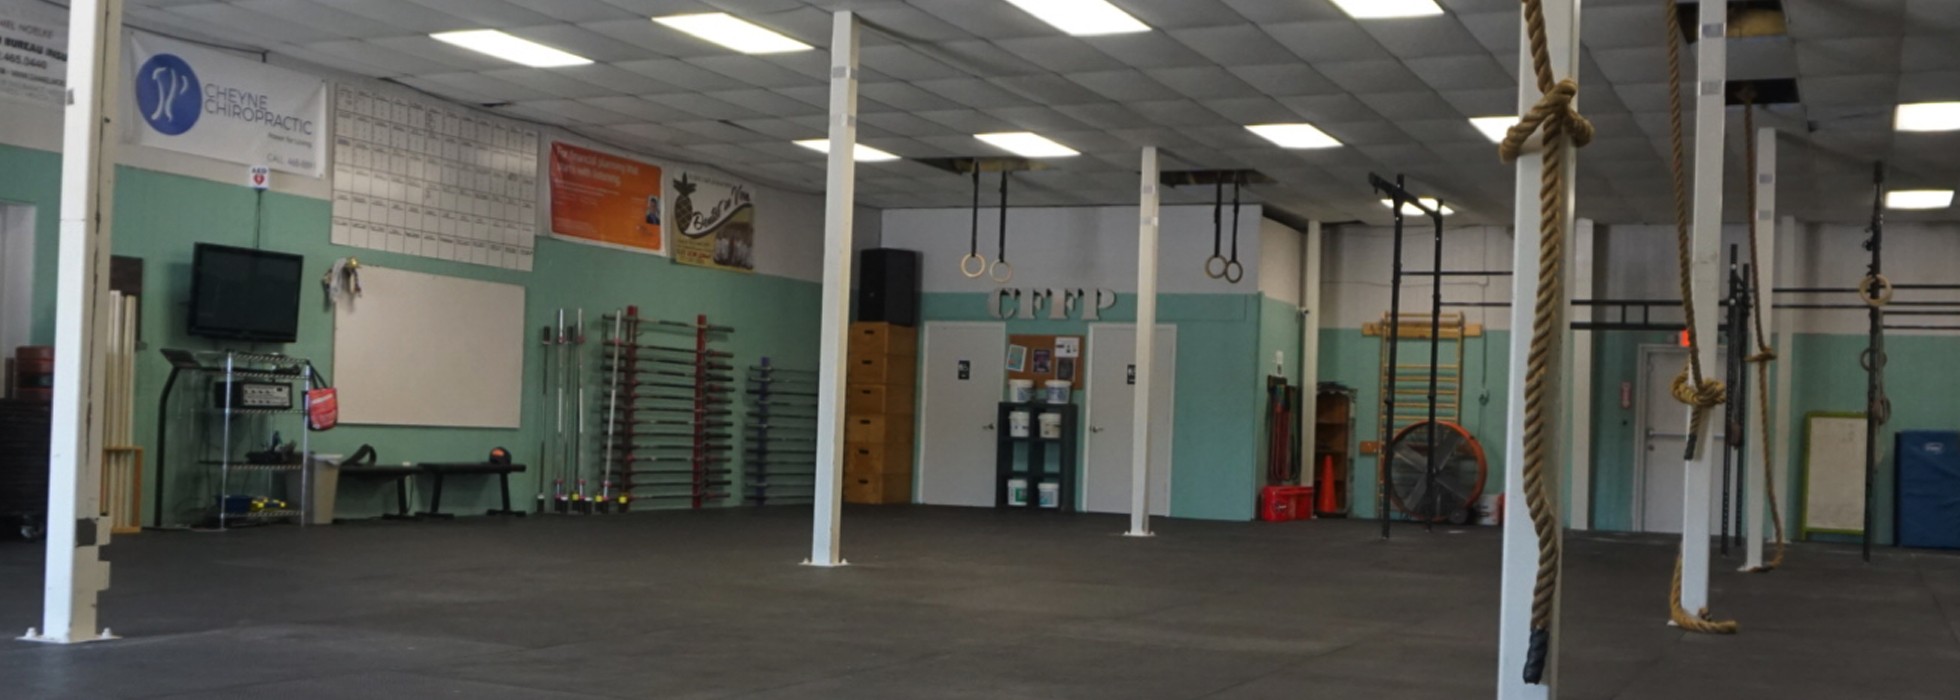 Gym In Fort Pierce That Can Help With Weight loss & Dieting